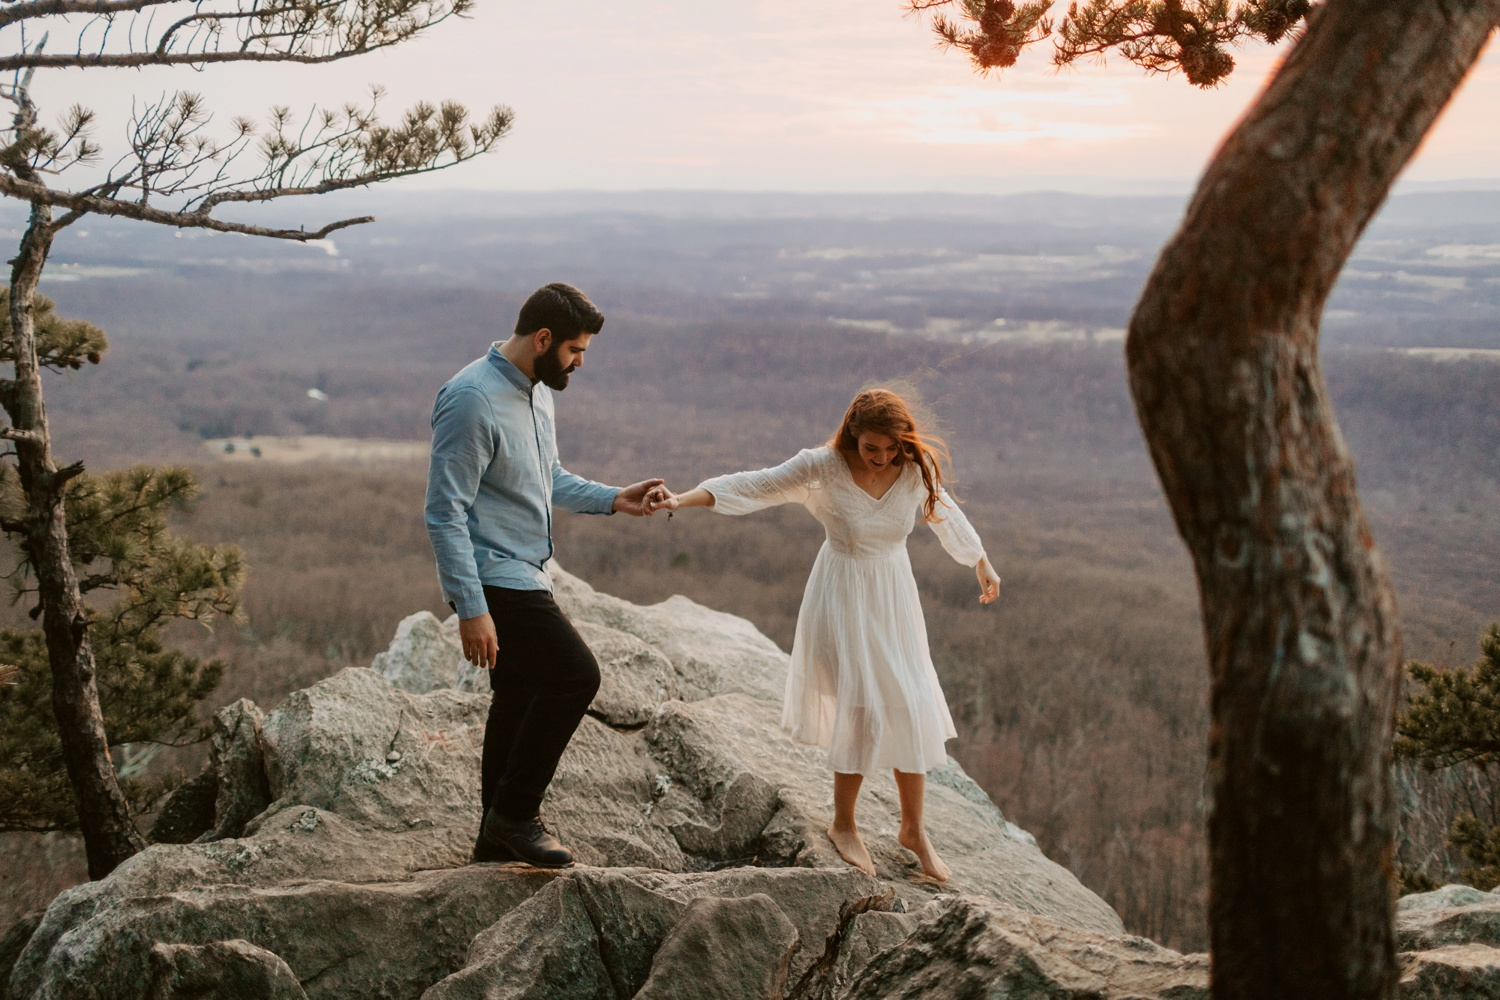 sugarloaf mountain Maryland mountain engagement photography Baltimore Maryland wedding photographer